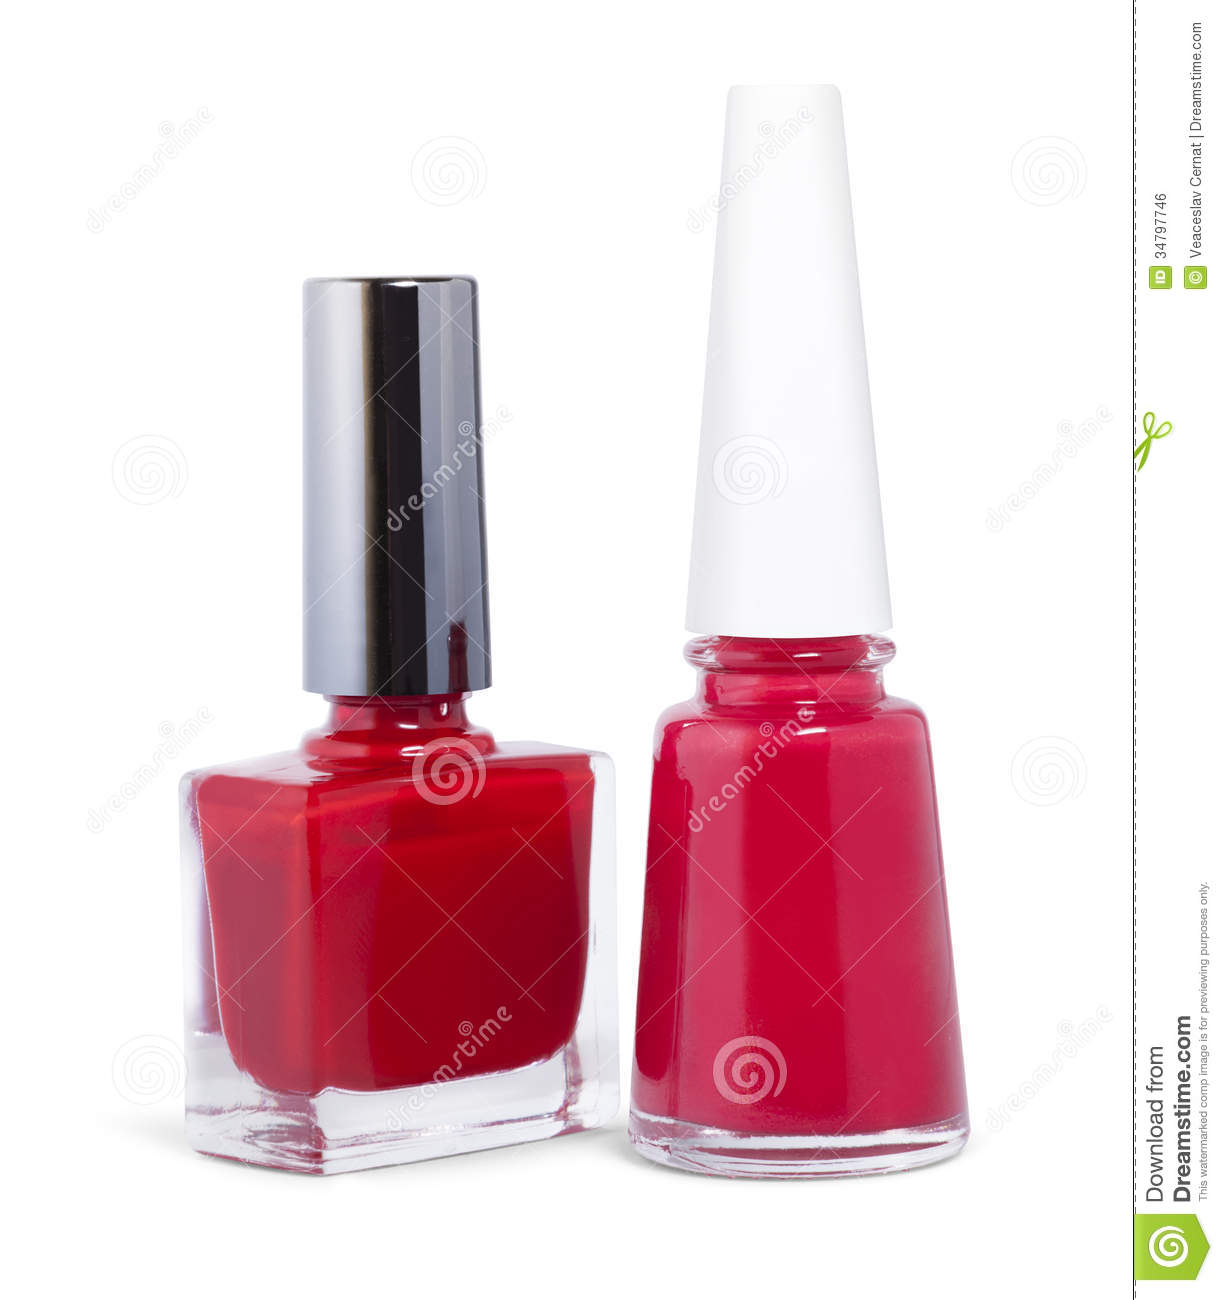 Red Nail Polish Royalty Free Stock Image - Image: 34797746 Nail Polish Bottles Clipart